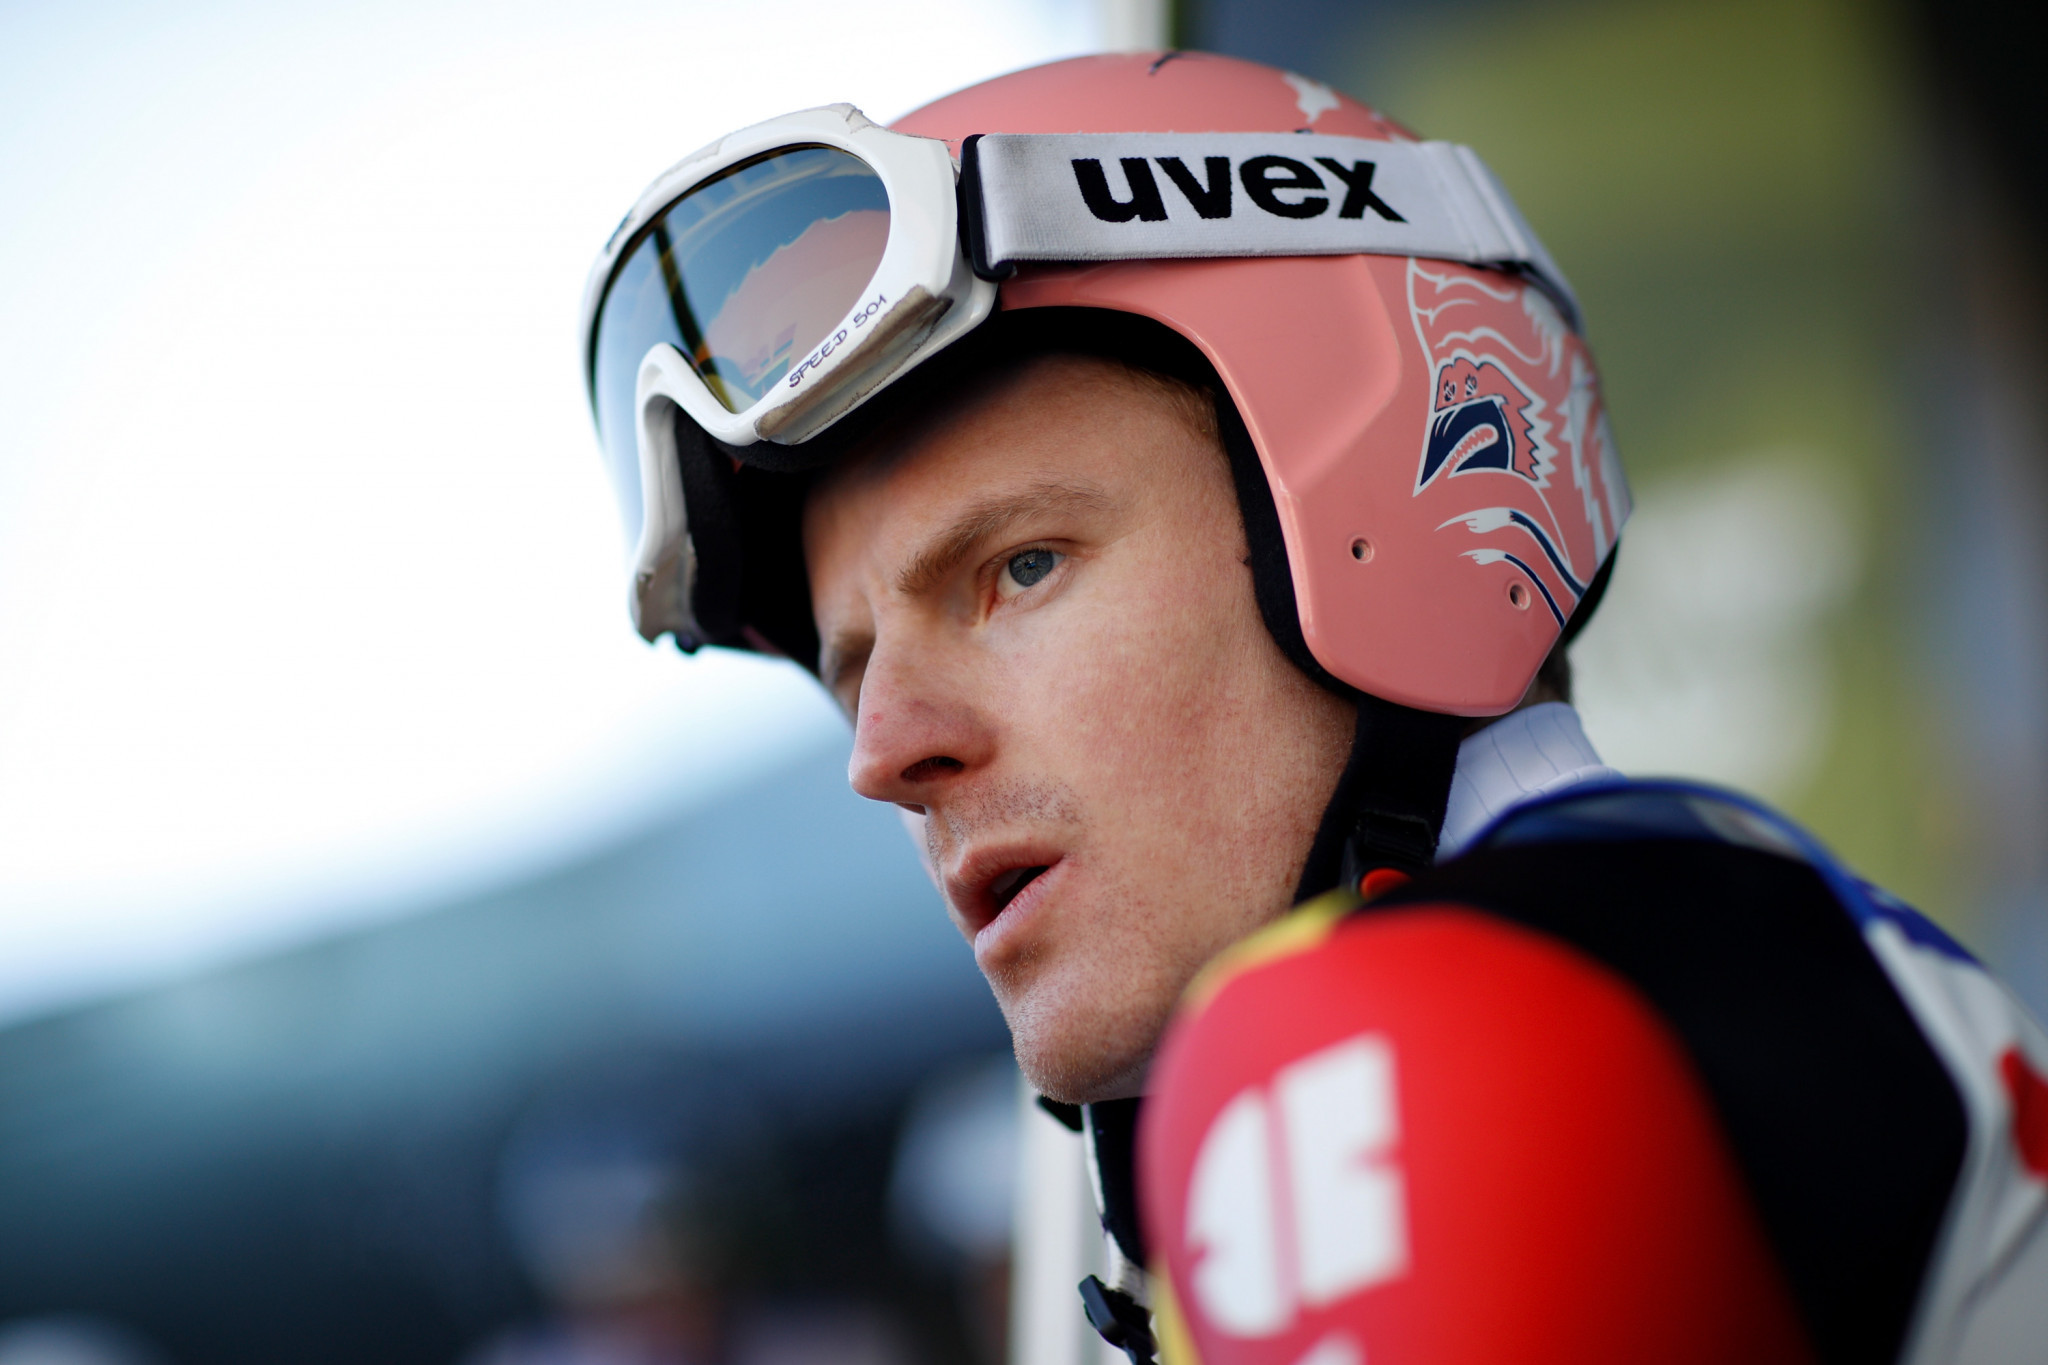 Olympic gold medallist Freund returns to ski jumping after injury setbacks